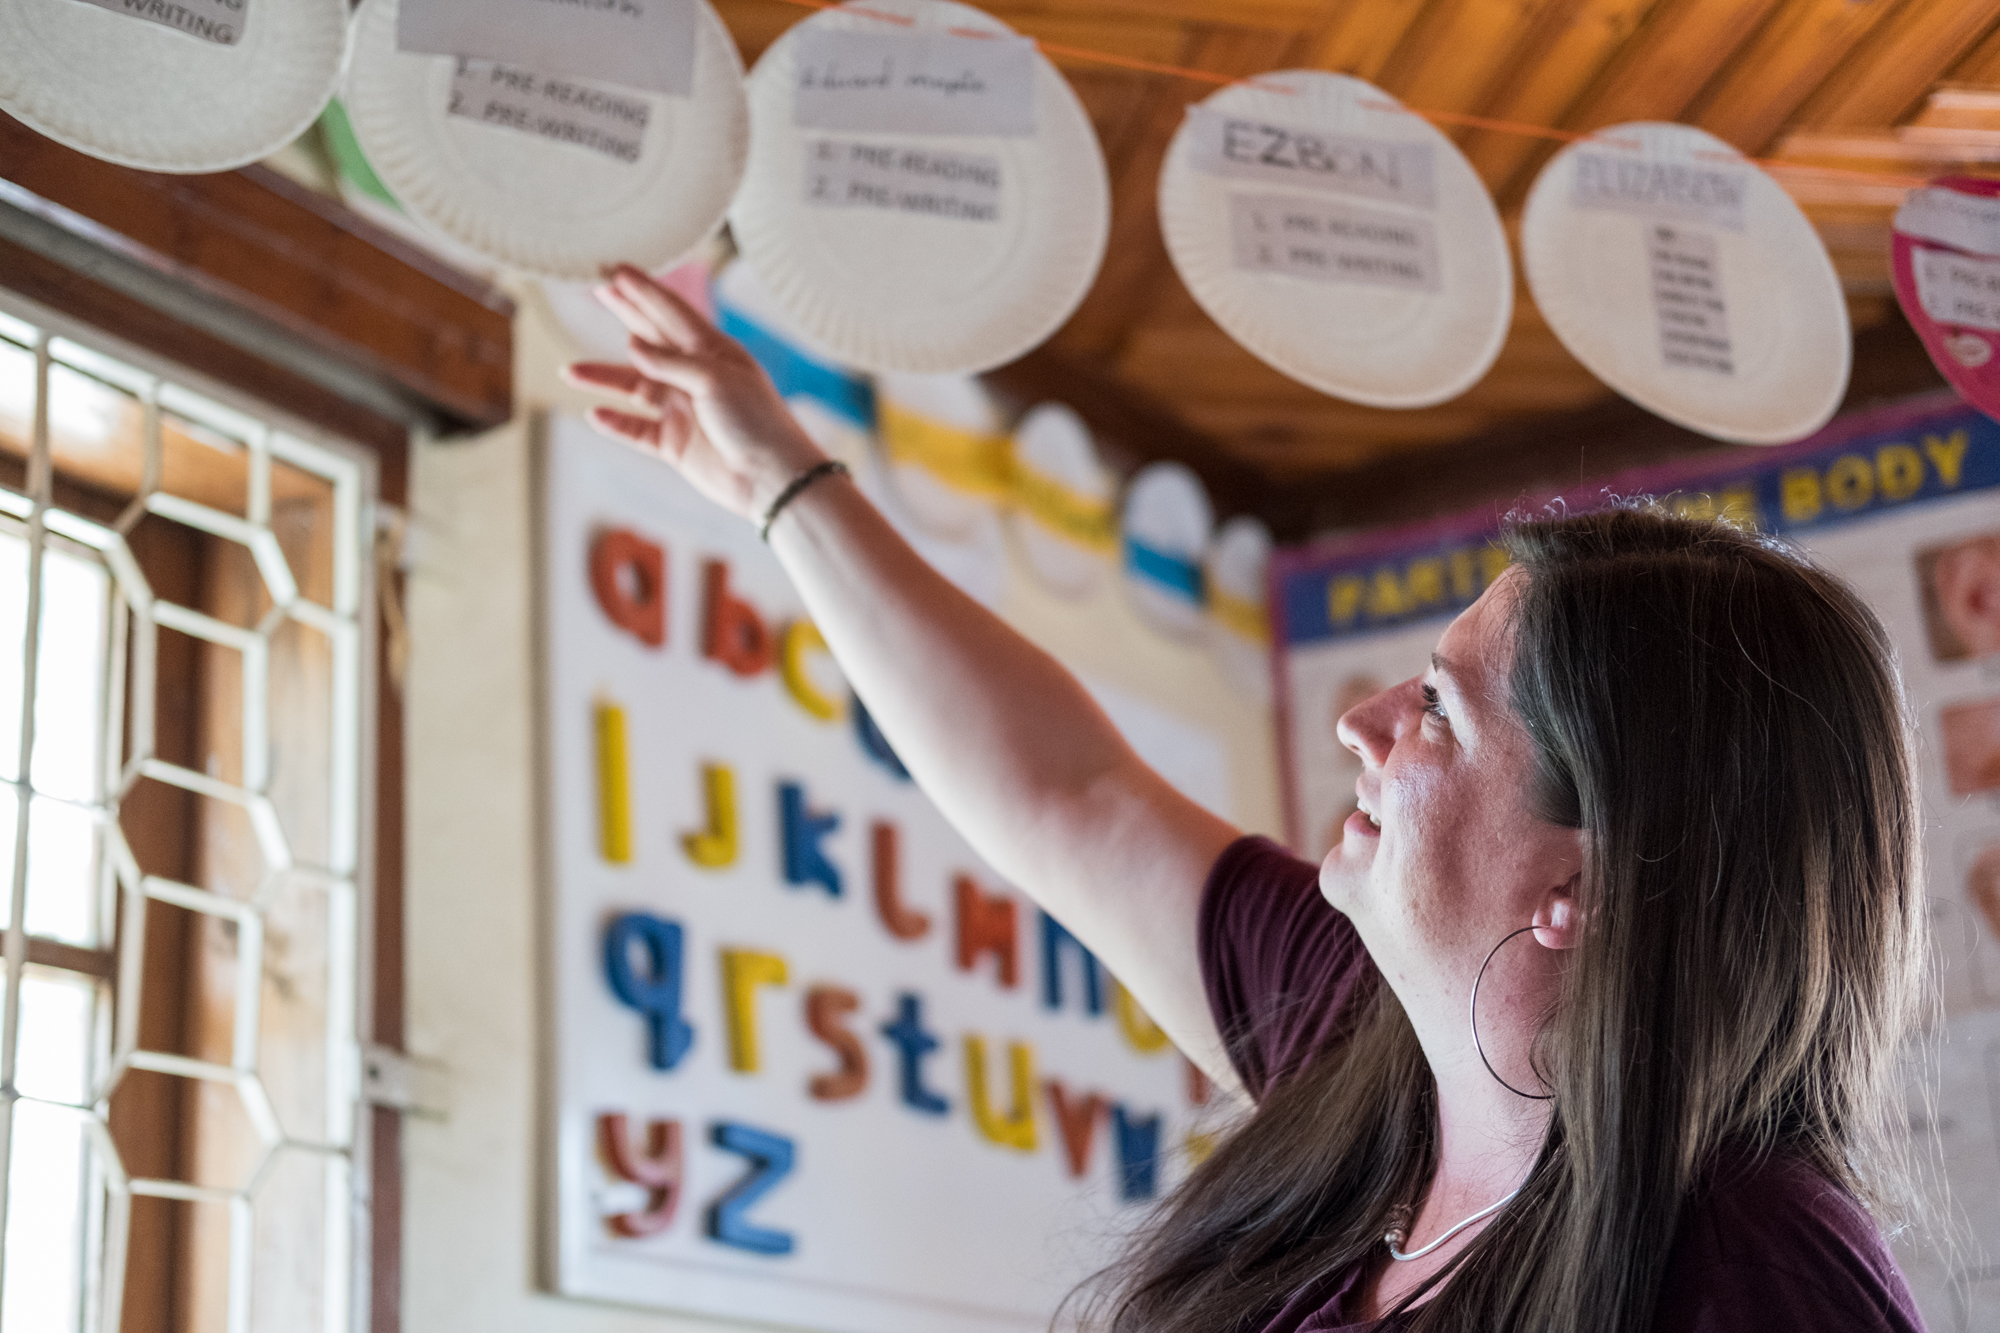 Holly looks at plates hanging in a classroom at Child Support Tanzania. Each plate is assigned to one student and has a list of his/her current learning activities.